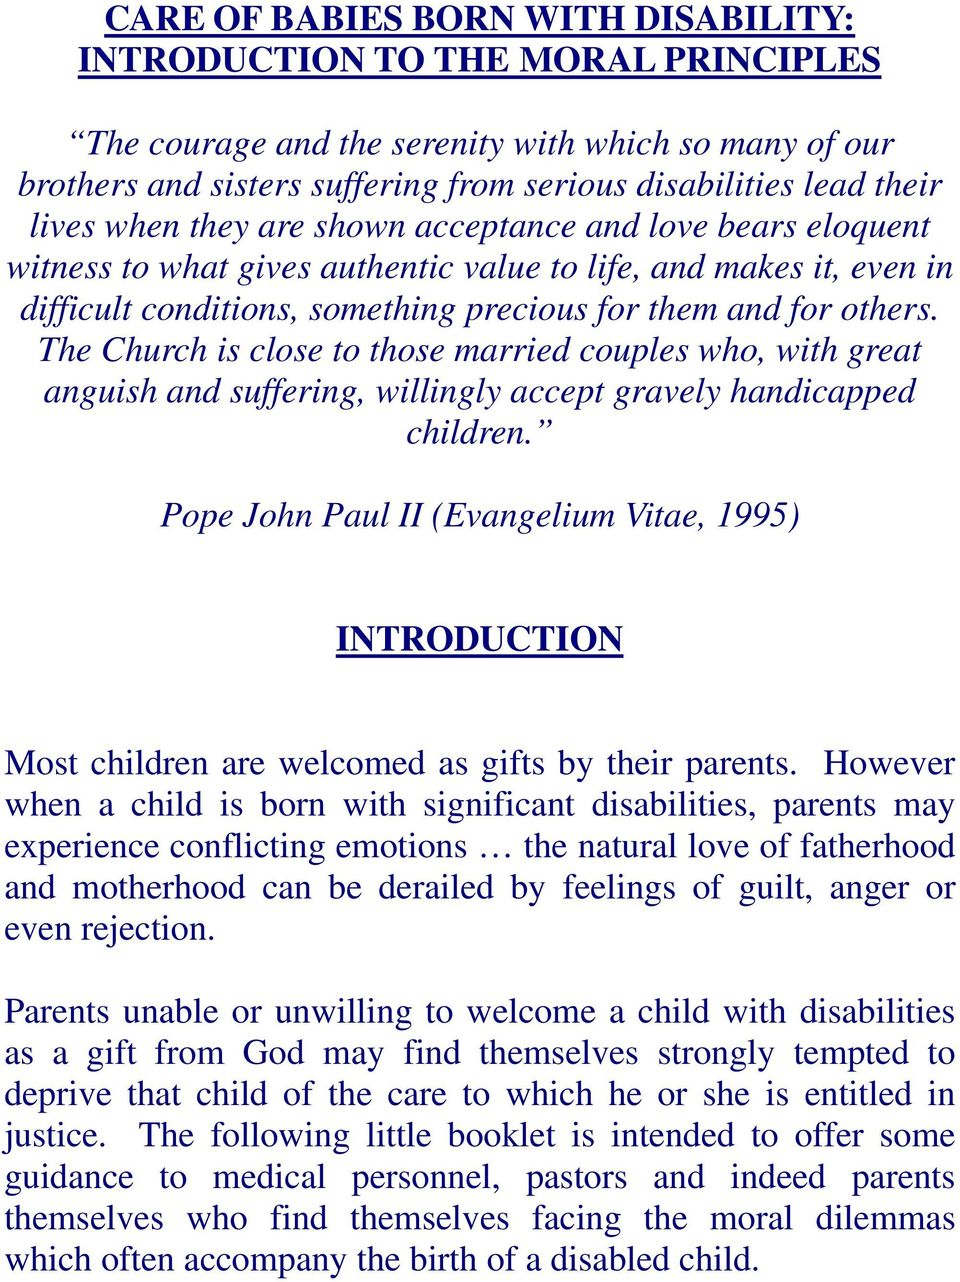 The Church is close to those married couples who, with great anguish and suffering, willingly accept gravely handicapped children.